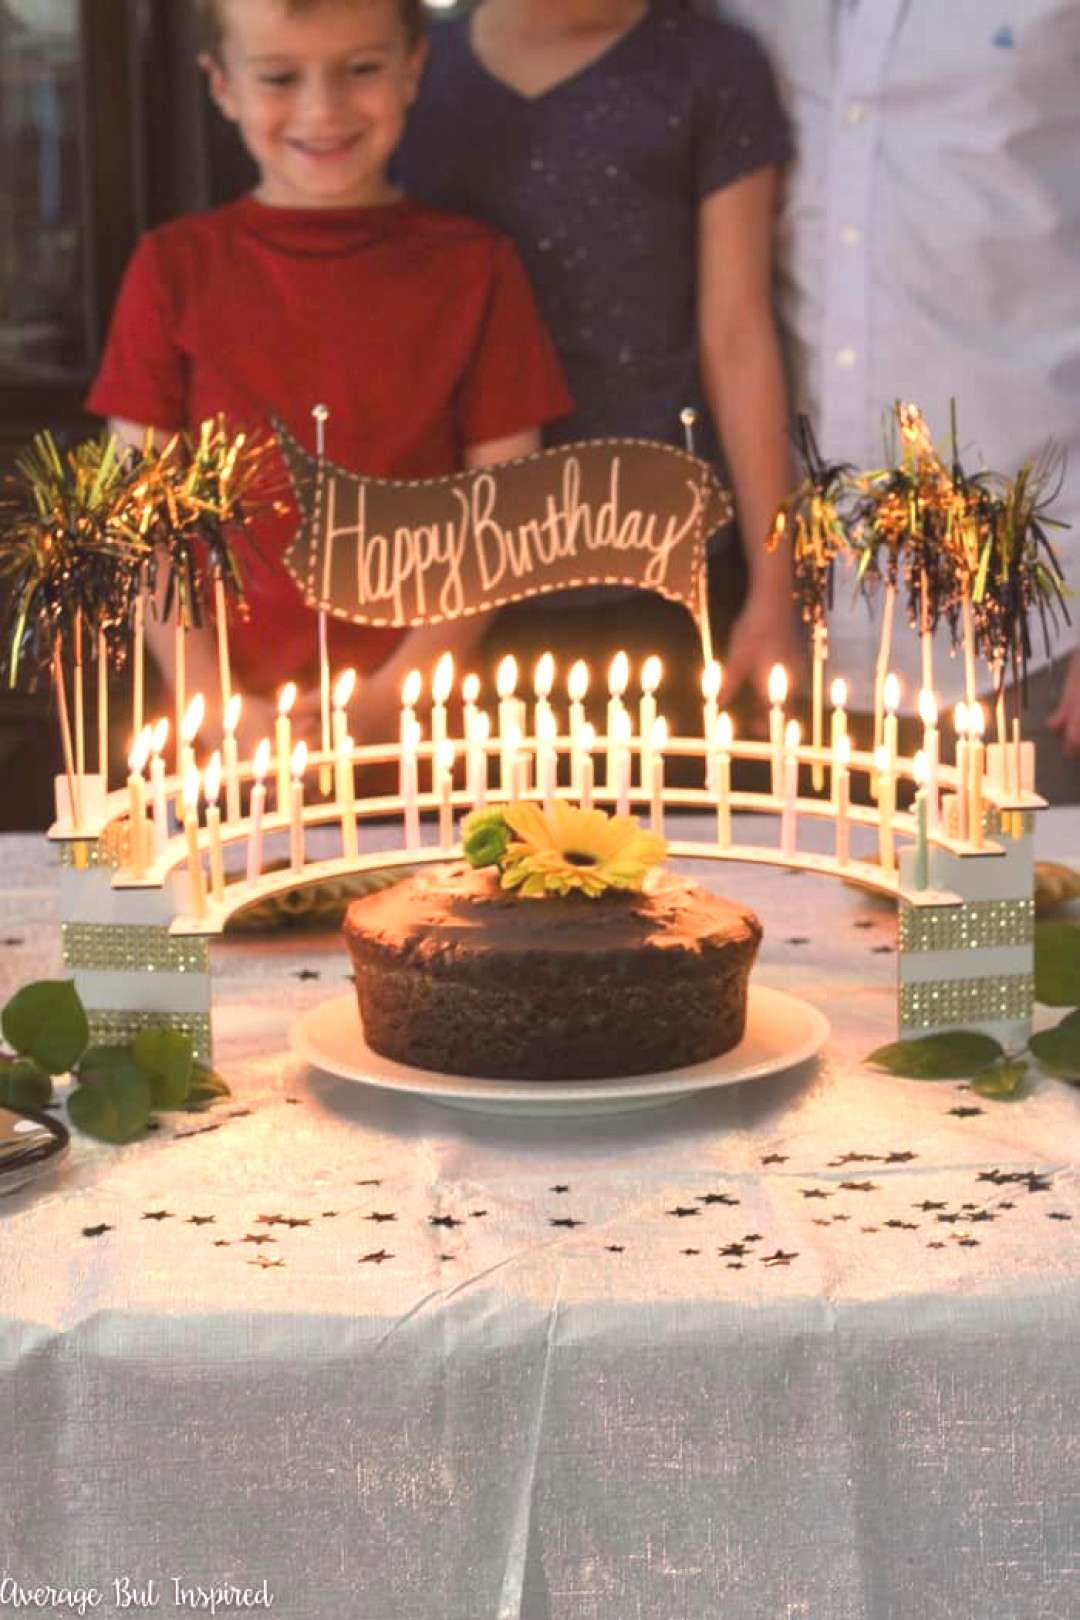 5 Tips for Hosting a Memorable Milestone Birthday Party - Average But Inspired